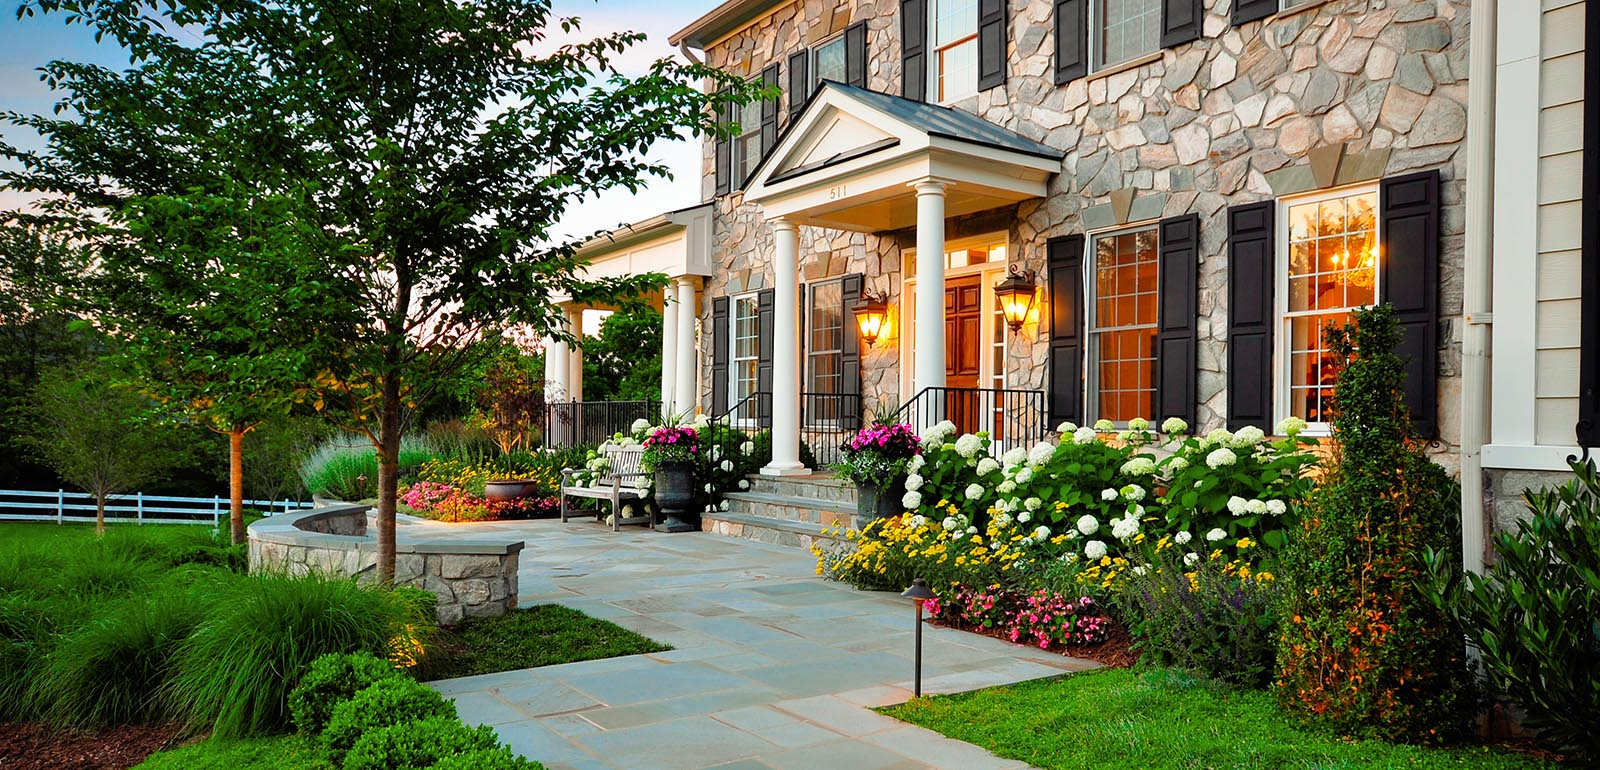 spruce up the yard with flower beds - Landscaping Design Ideas For Front Of House